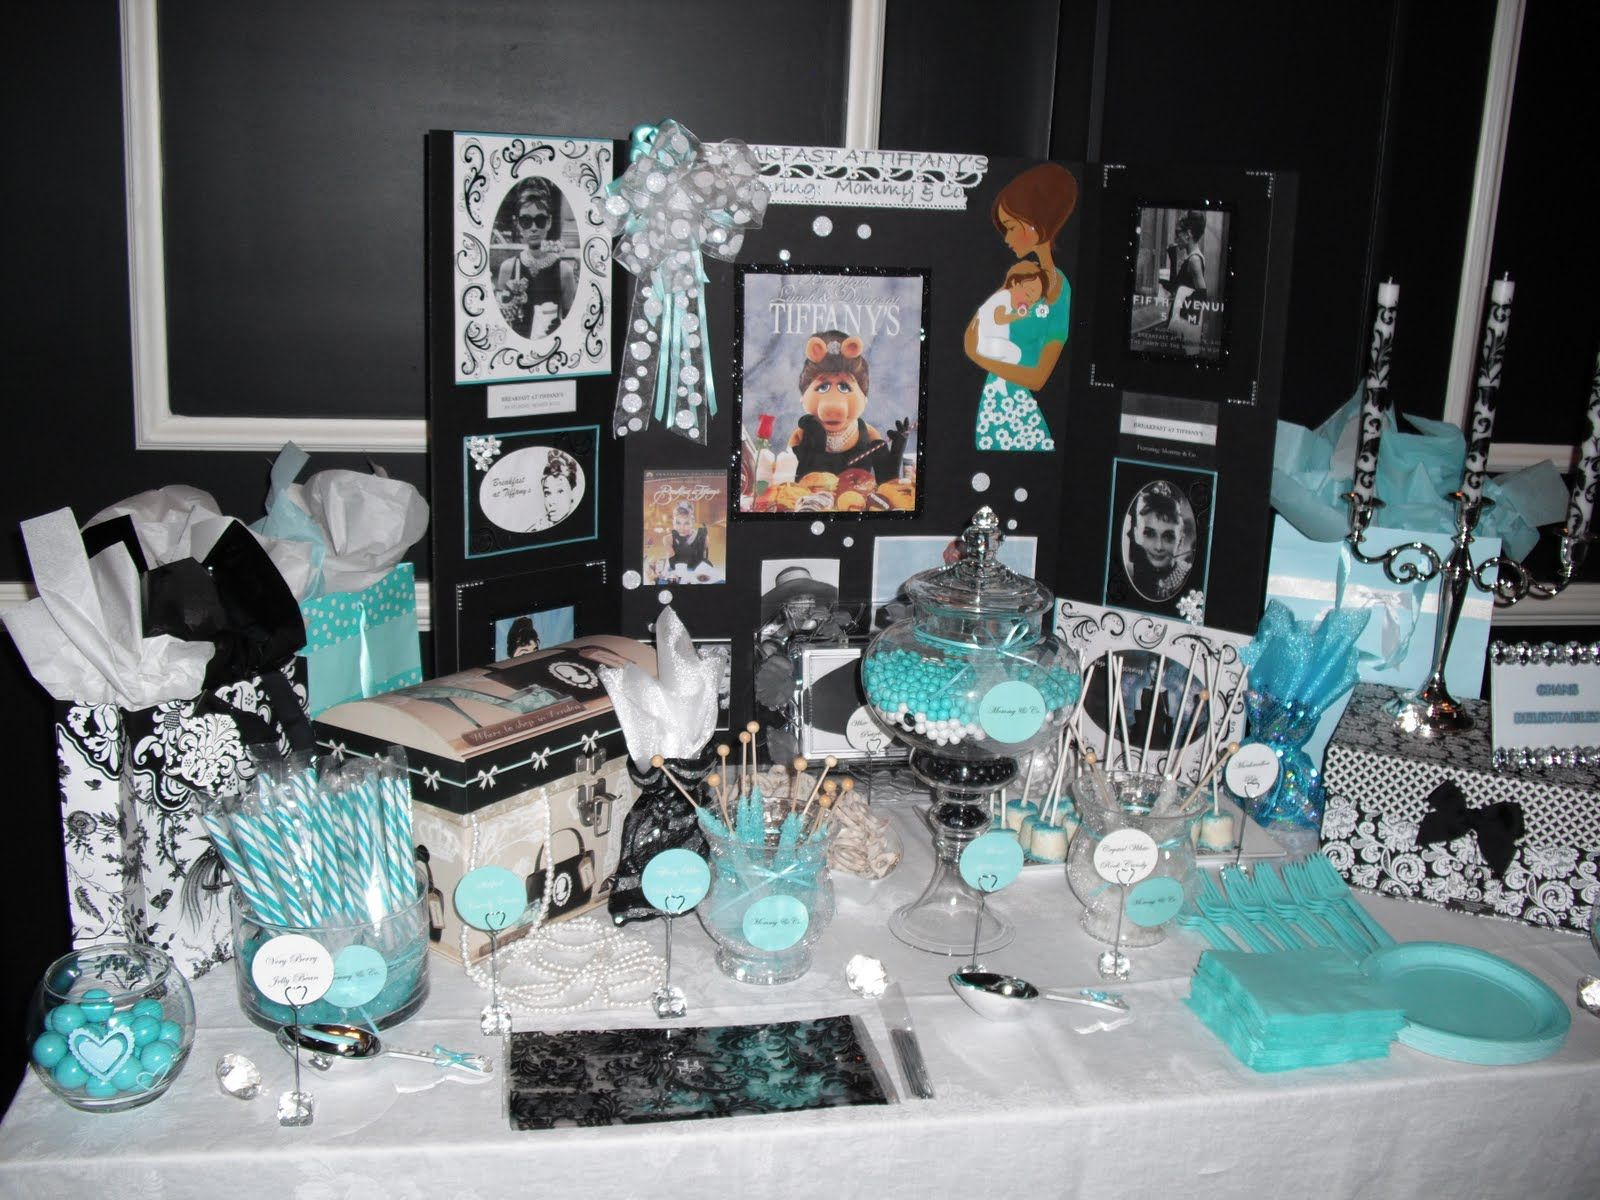 Breakfast At Tiffany Wallpaper   Cerca Con Google · Brunch Baby  ShowersTiffany Baby ShowersThemed ...